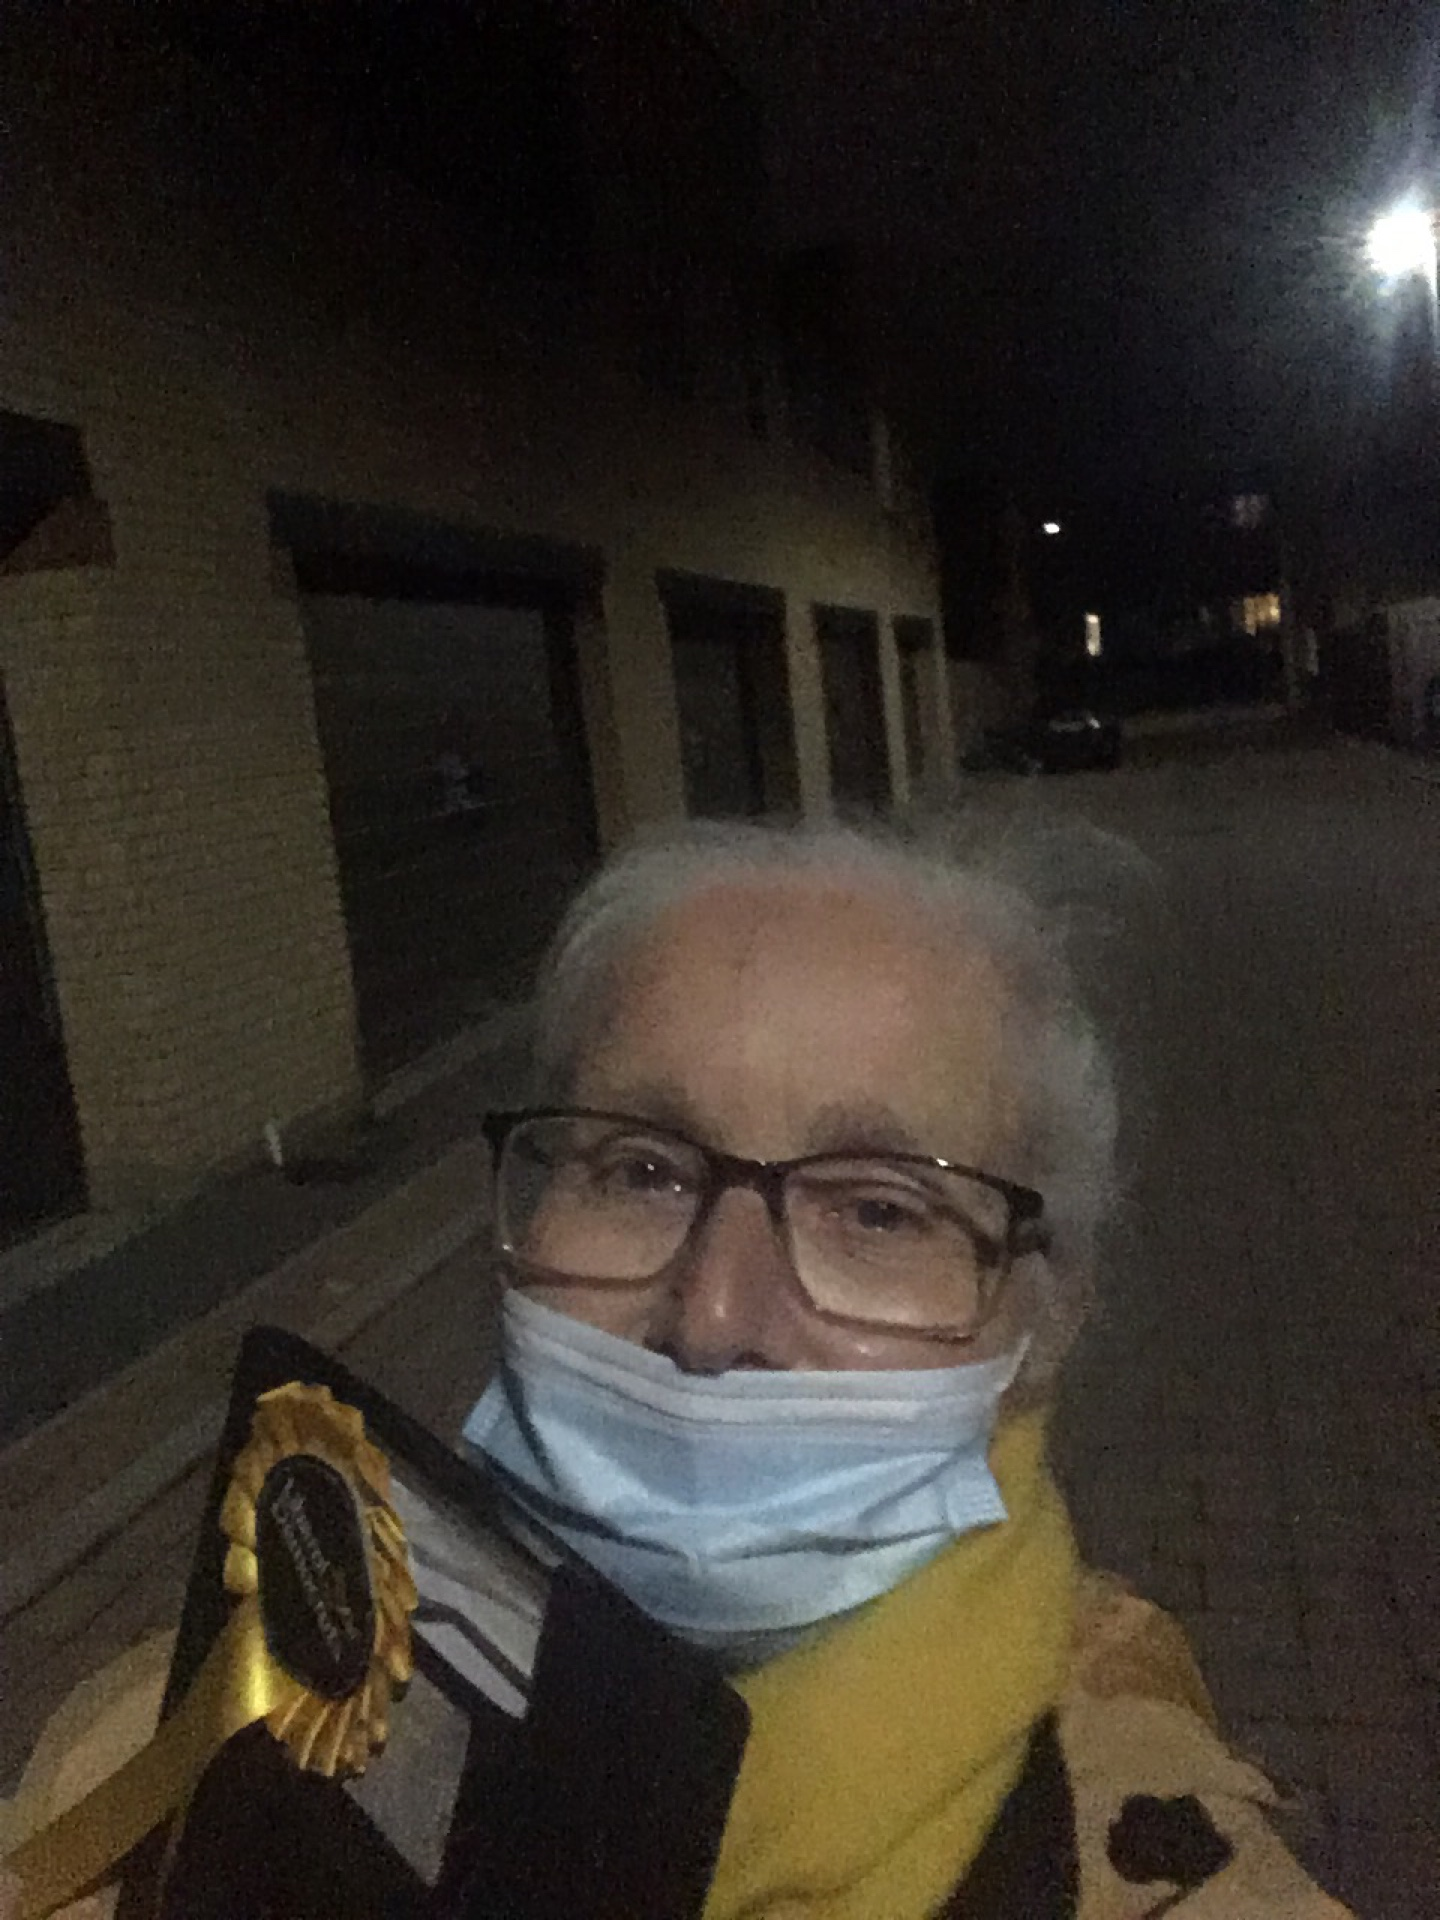 PMS_canvassing_masked17Mar21.jpg